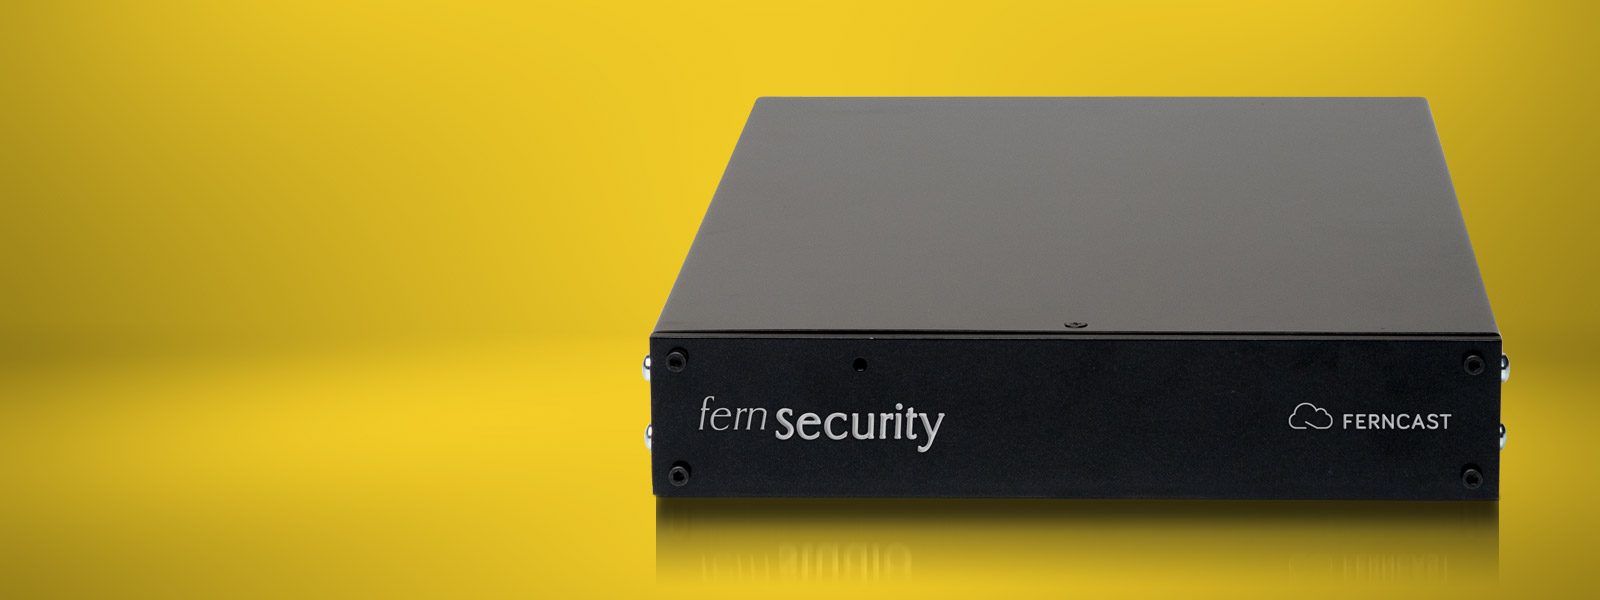 fernSecurity